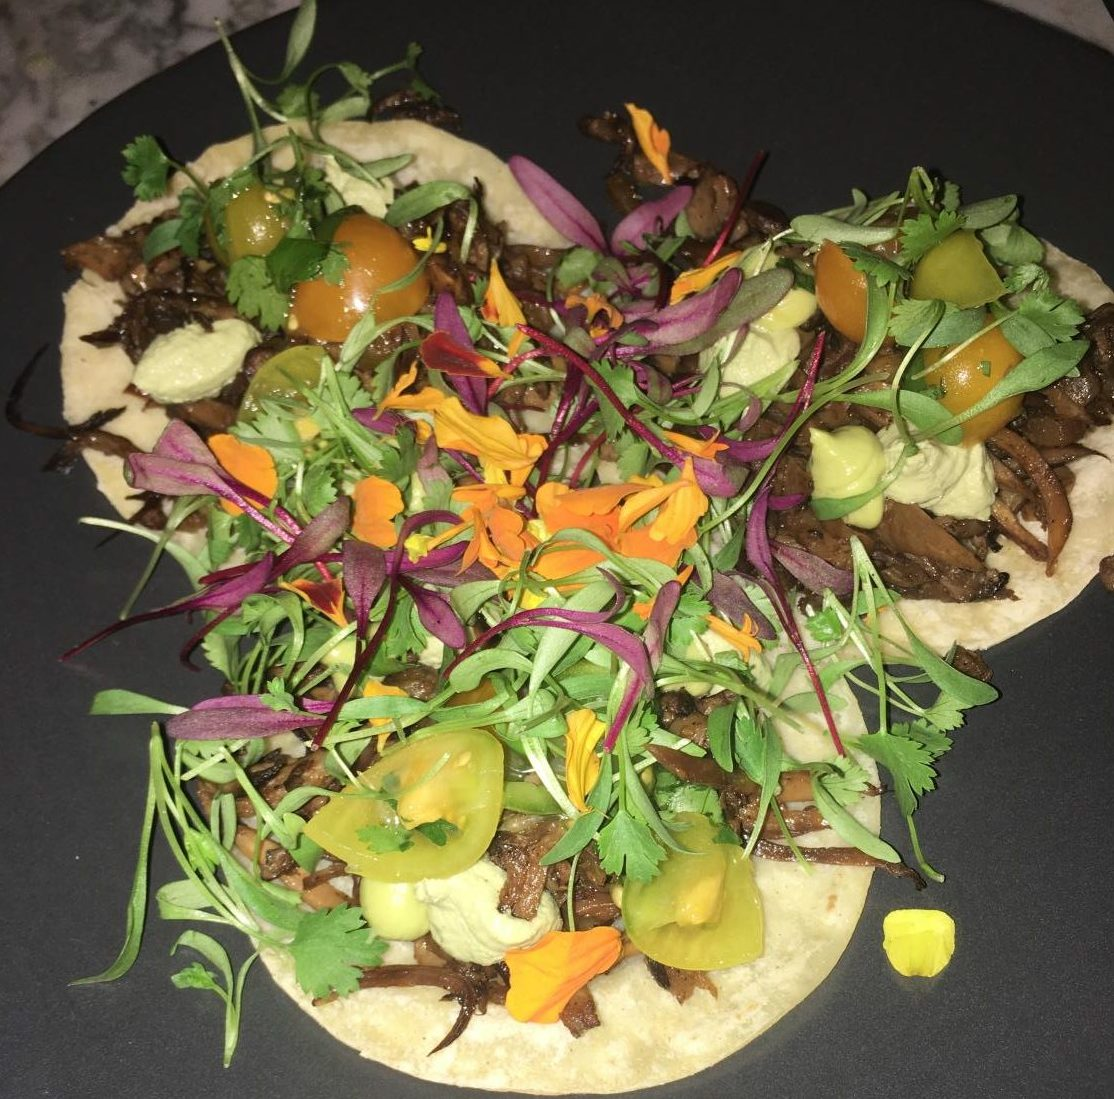 The restaurant offers vegan tacos on their dinner menu. They are the perfect size to share with a friend or to indulge in by yourself.